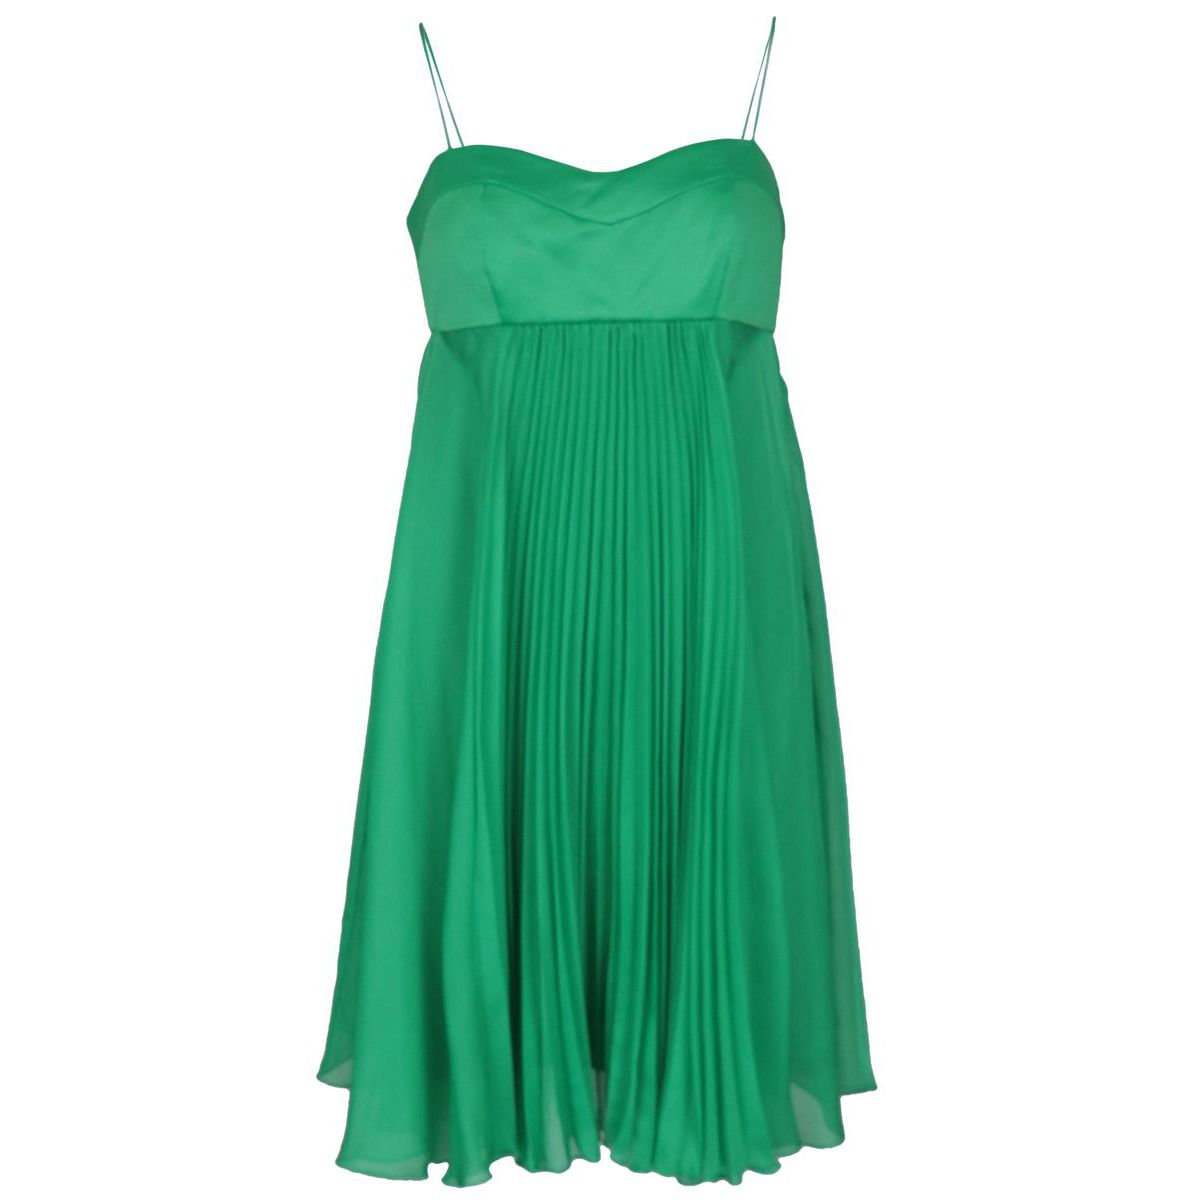 Biancaneve dress Mint Pinko